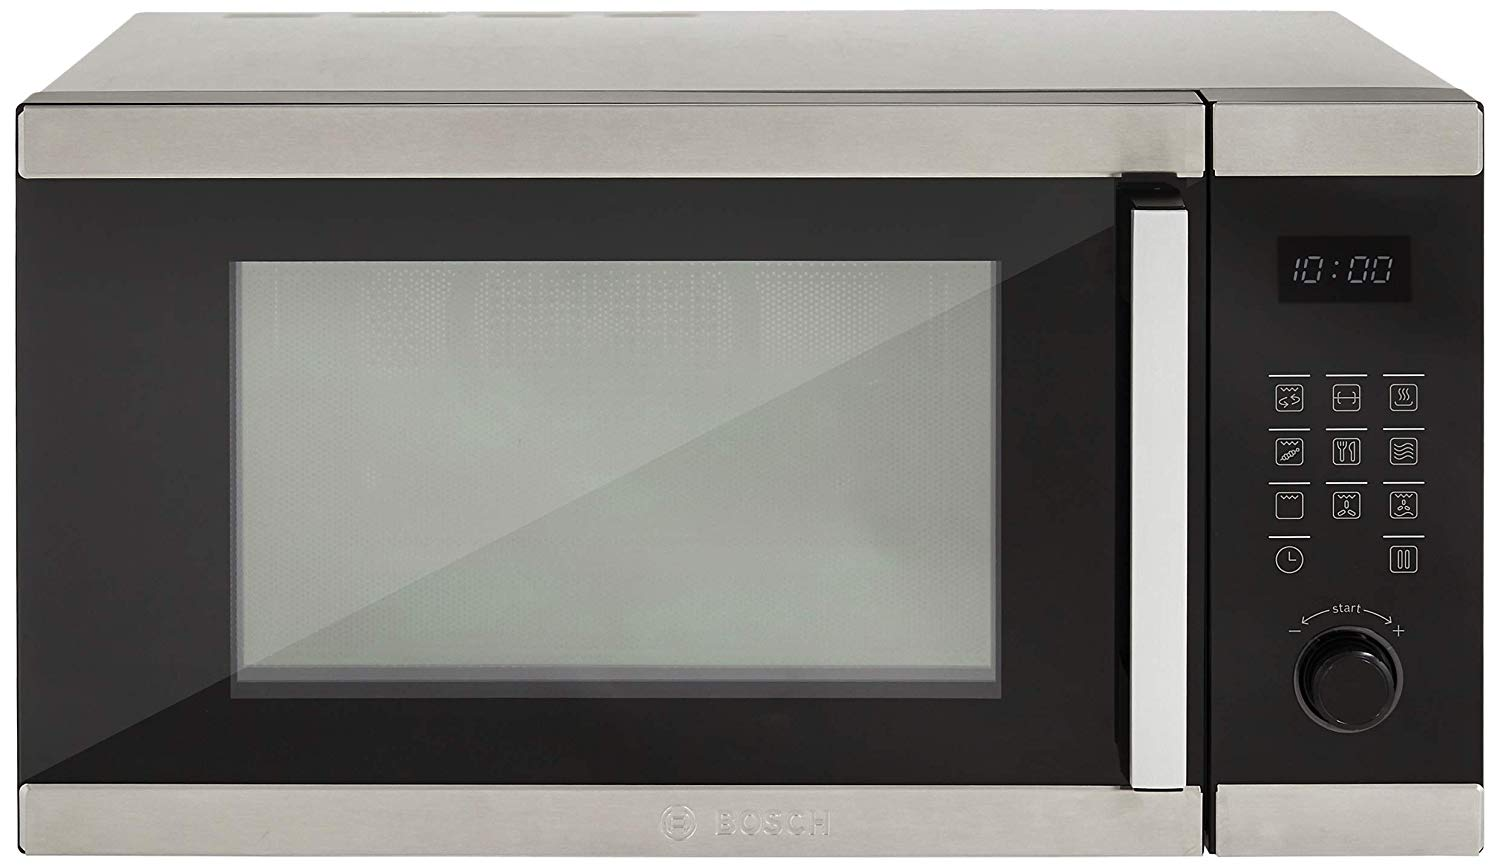 Bosch 28 Liters Convection Microwave Oven